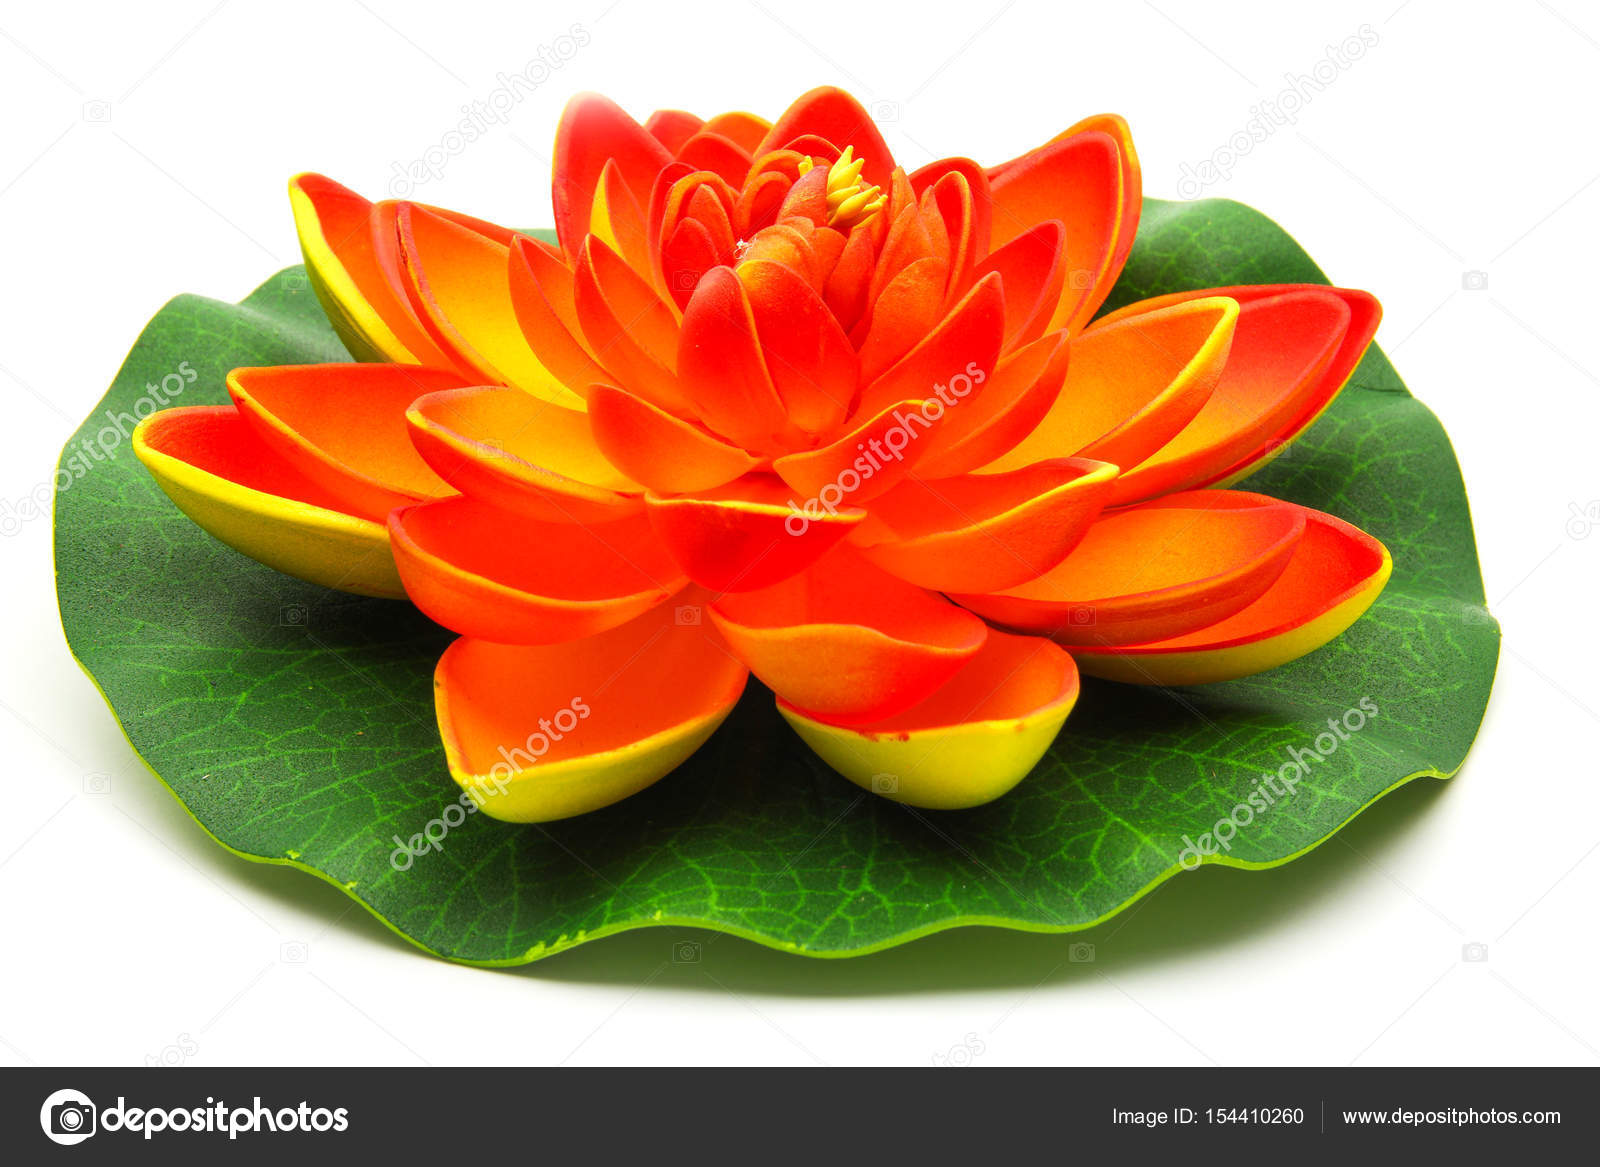 Lotus flower model stock photo cigmusic 154410260 lotus flower model stock photo izmirmasajfo